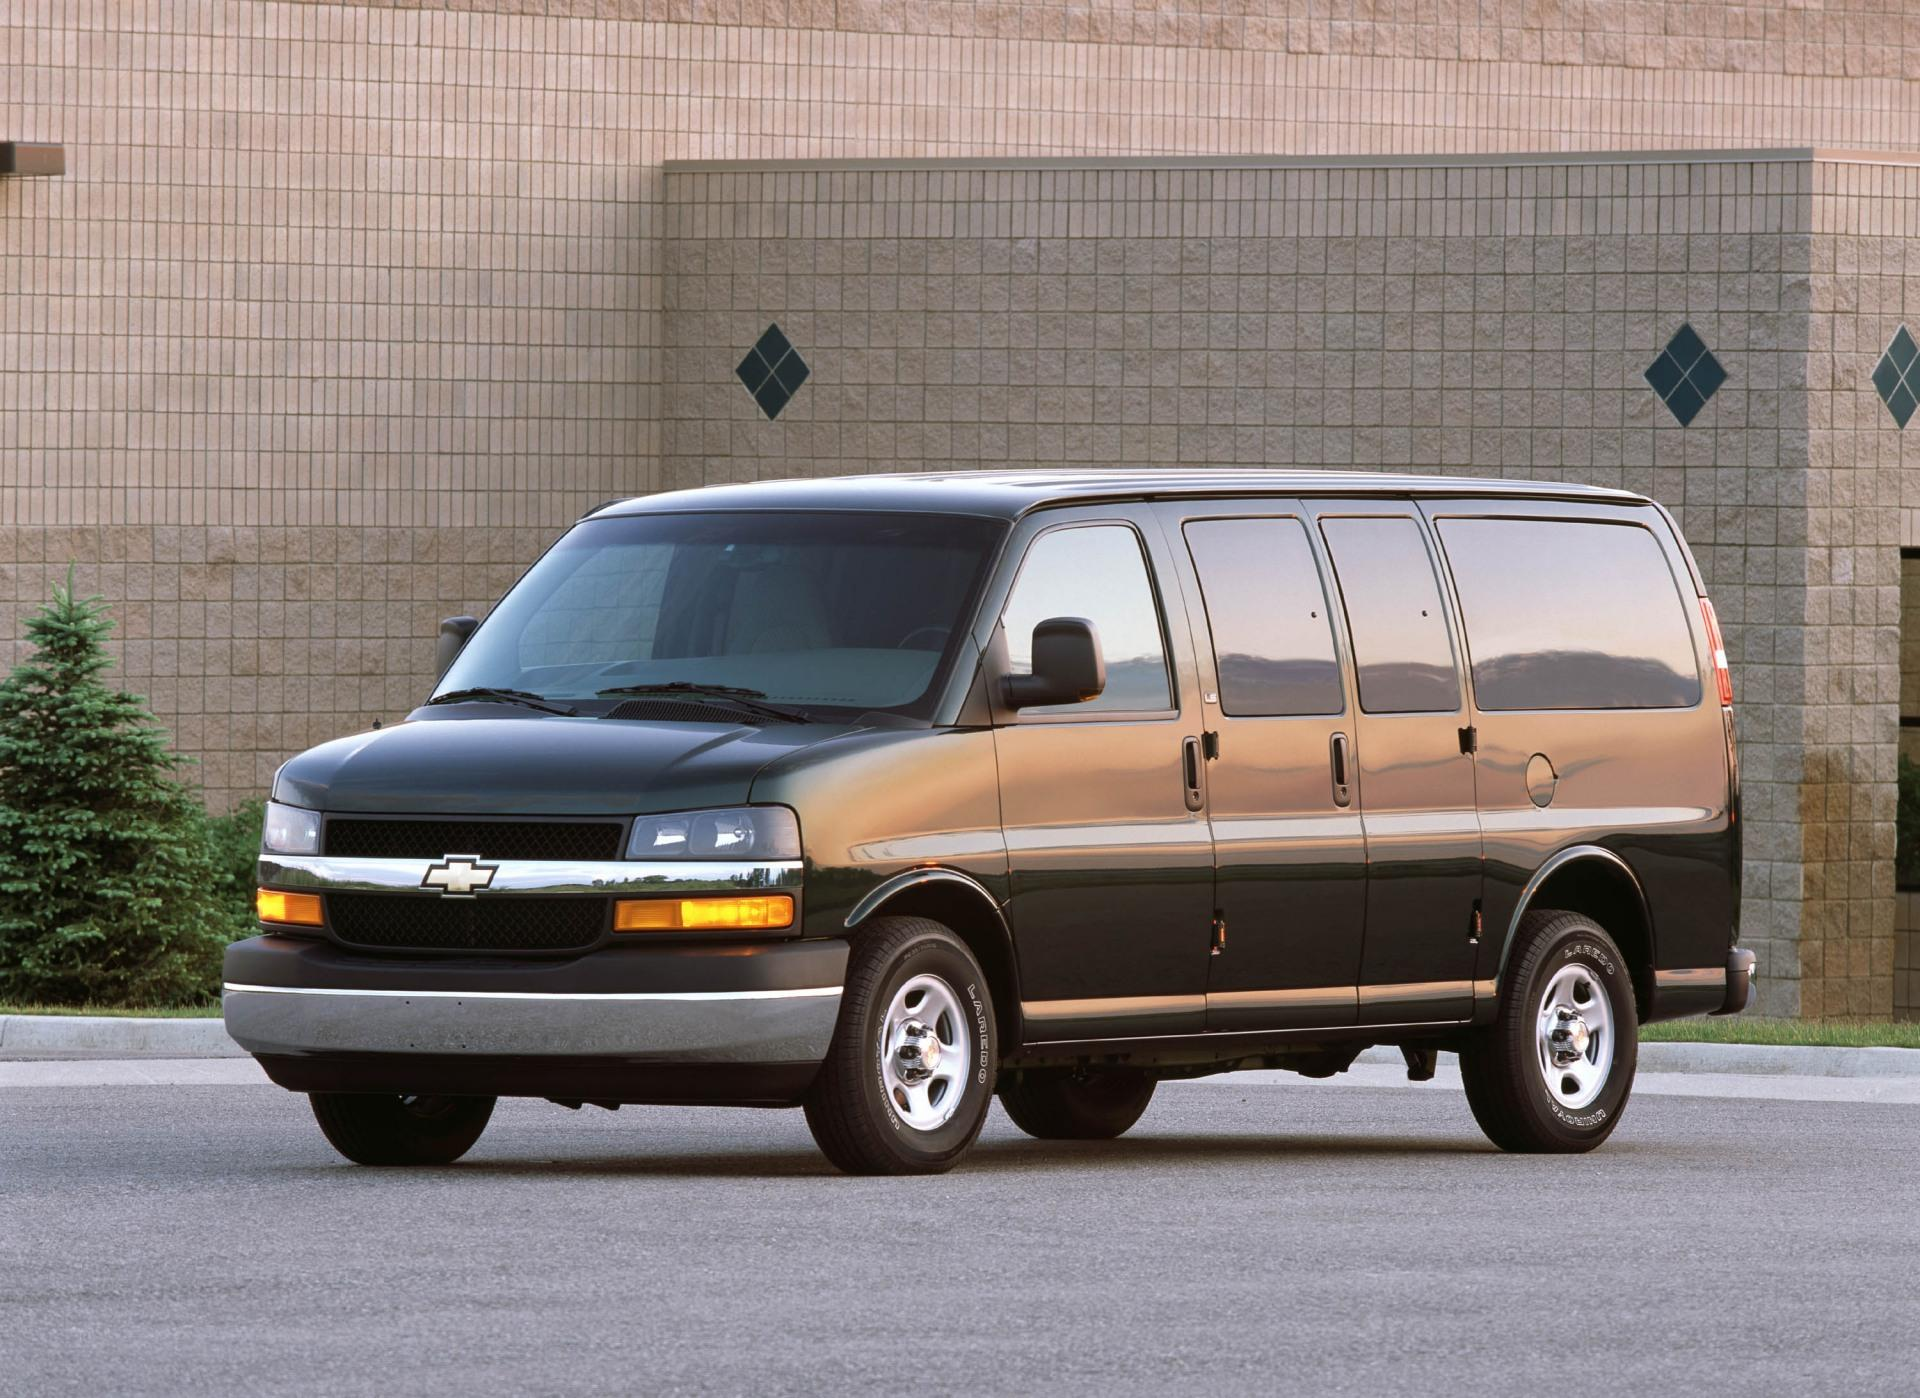 2001 chevrolet express pictures history value research news conceptcarz com